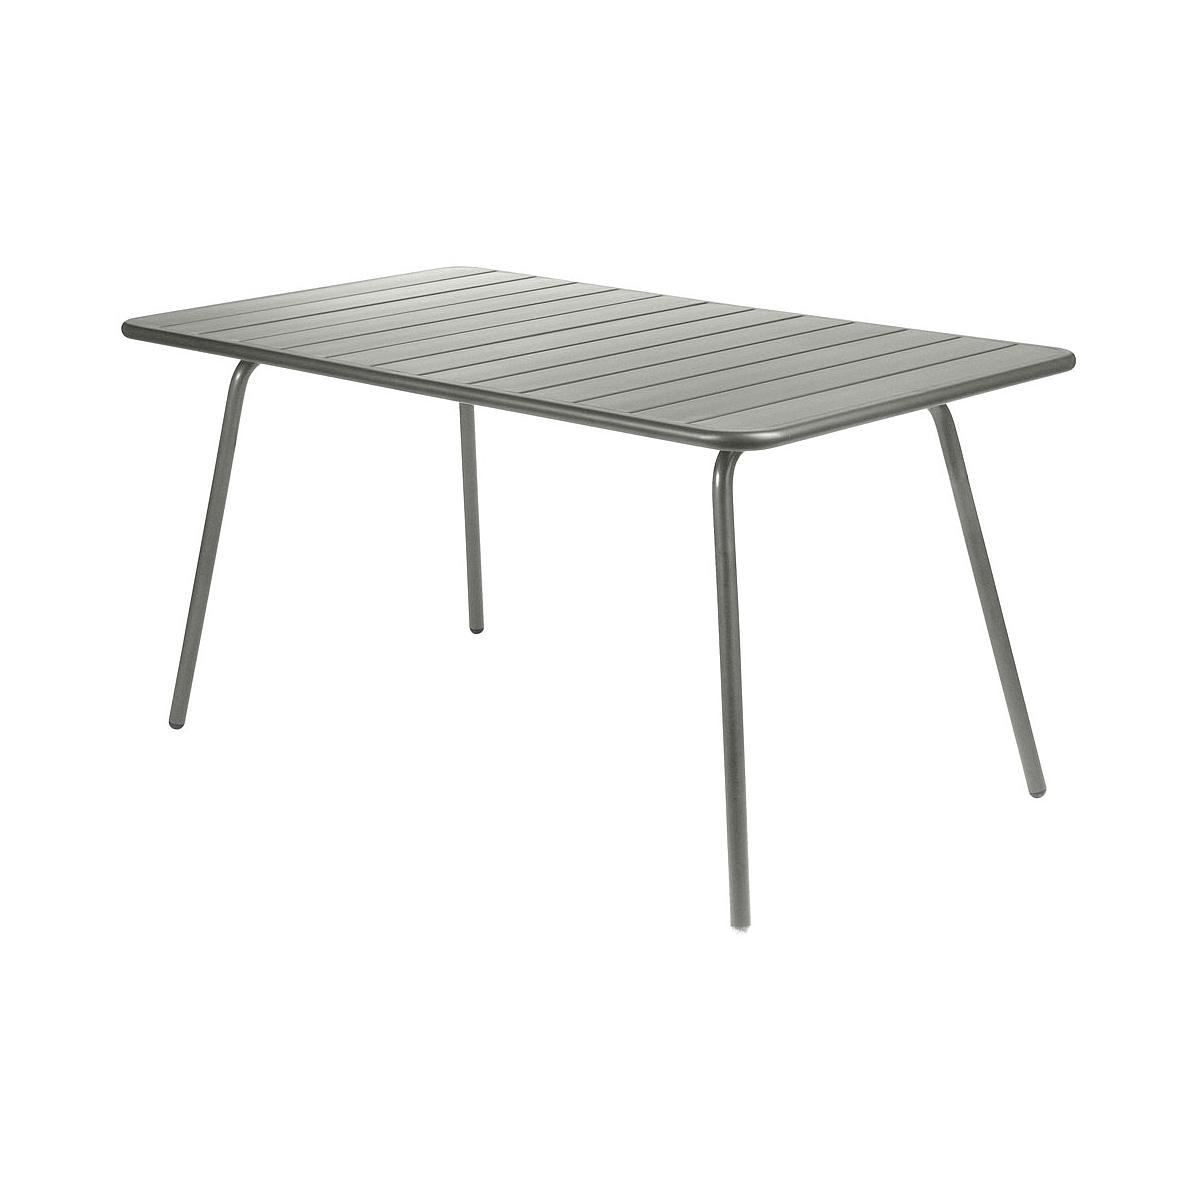 LUXEMBOURG by Fermob Table 143x80 cm romarin